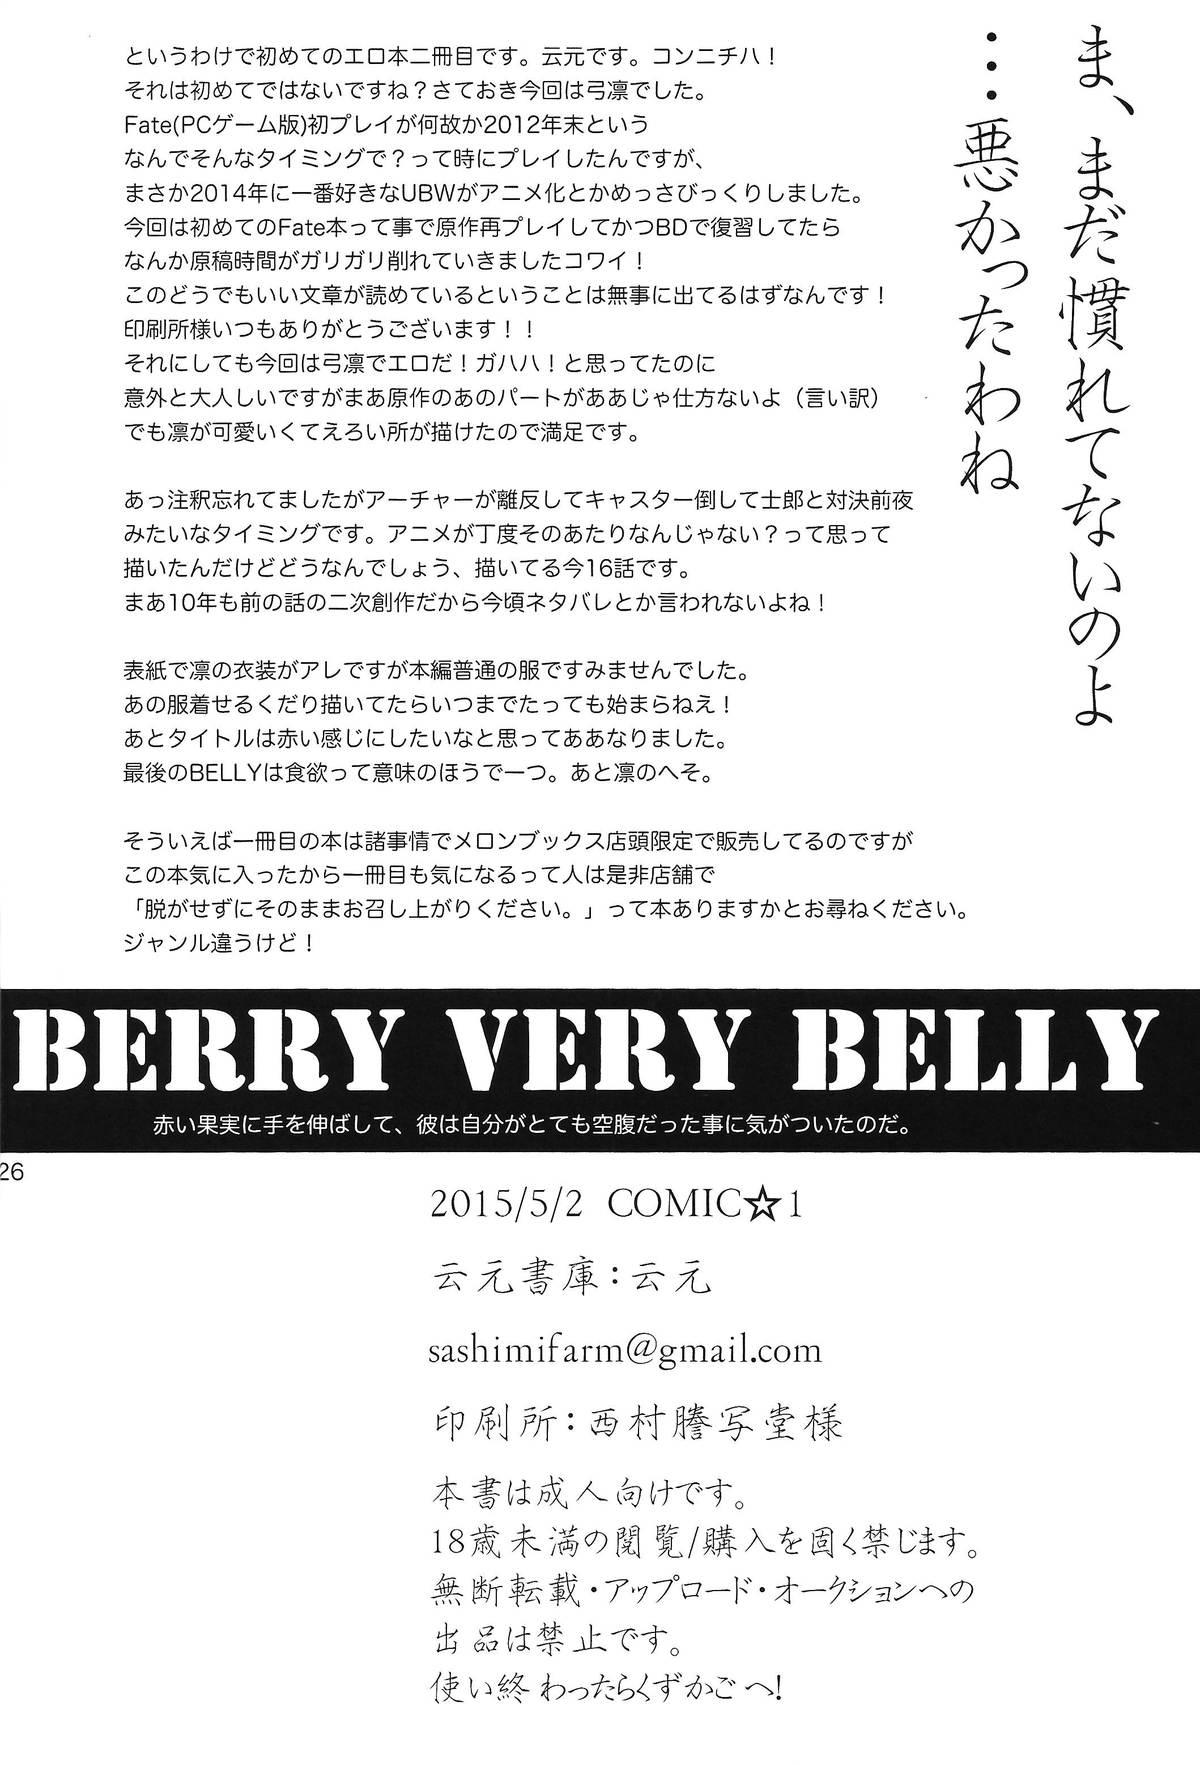 BERRY VERY BELLY 23